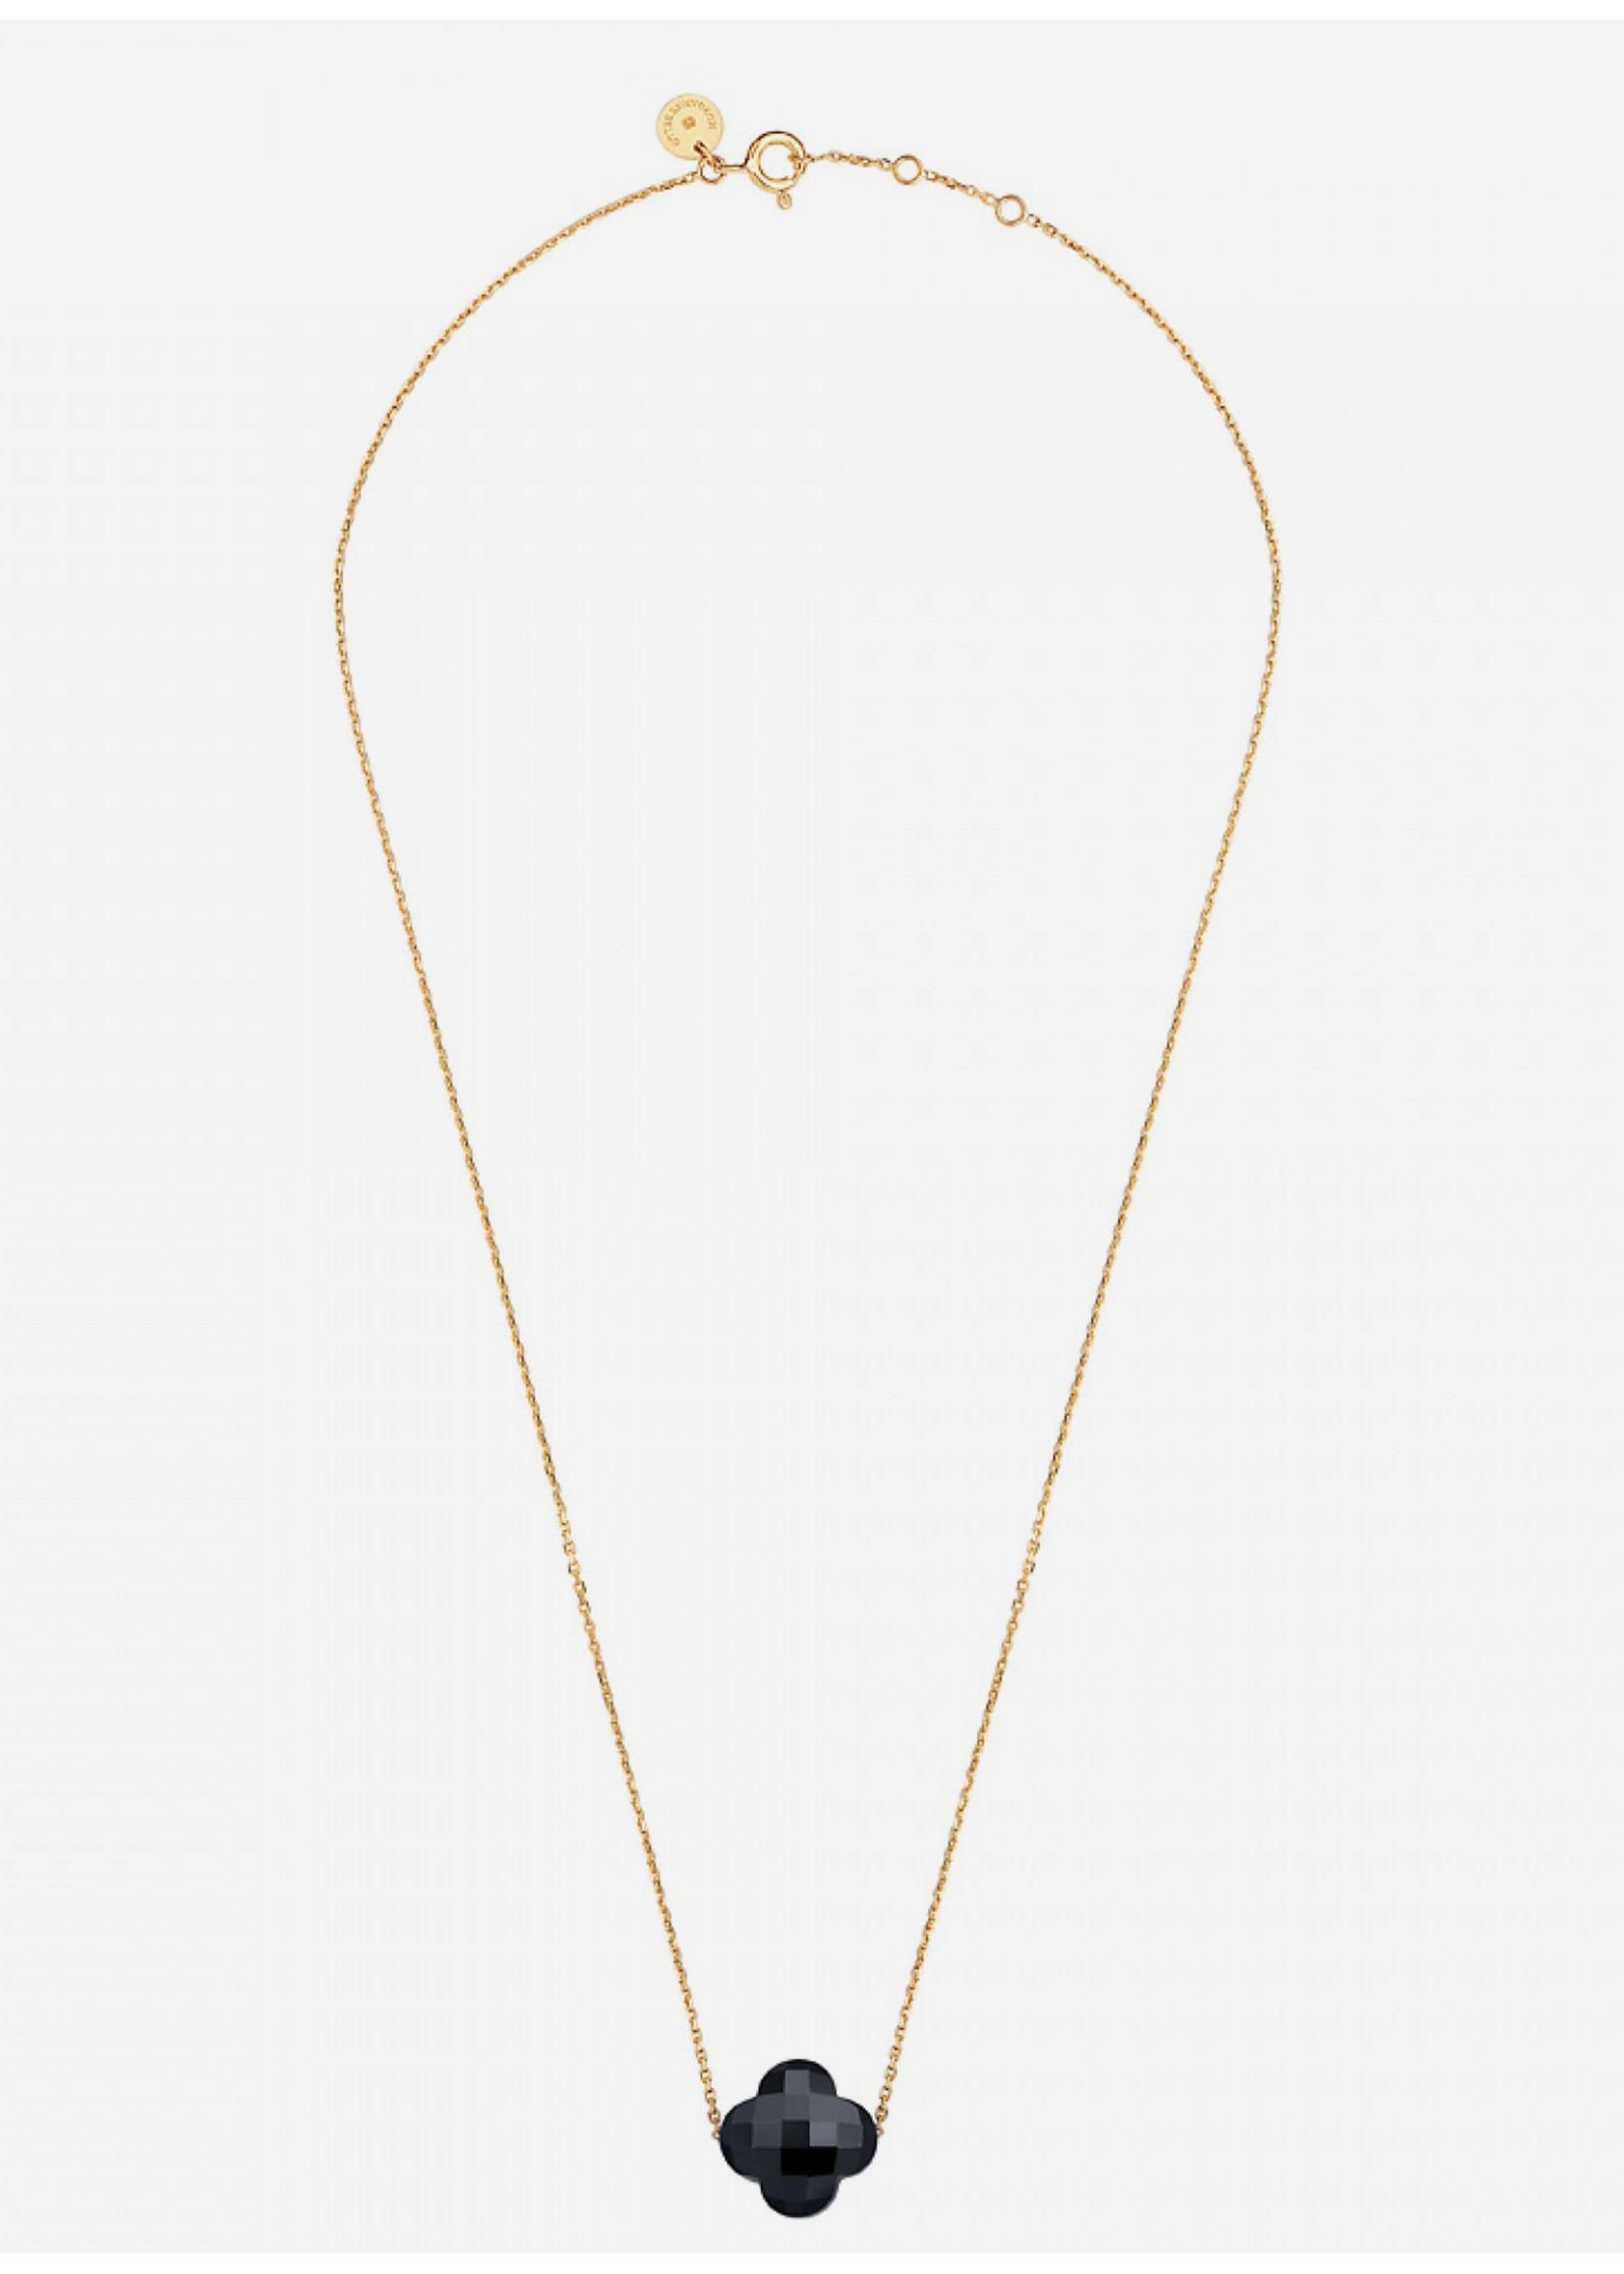 Morganne Bello Clover onyx necklace yellow gold